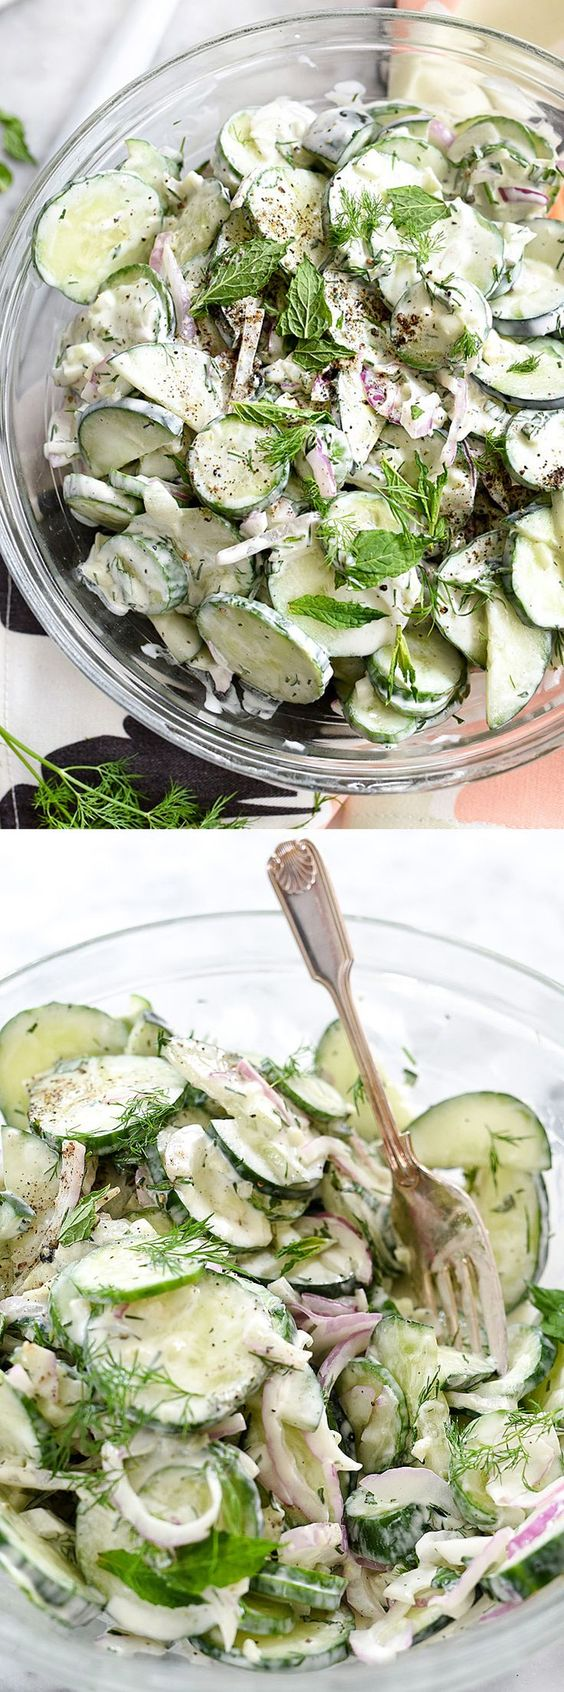 Cucumber salad, Yogurt and Salads on Pinterest